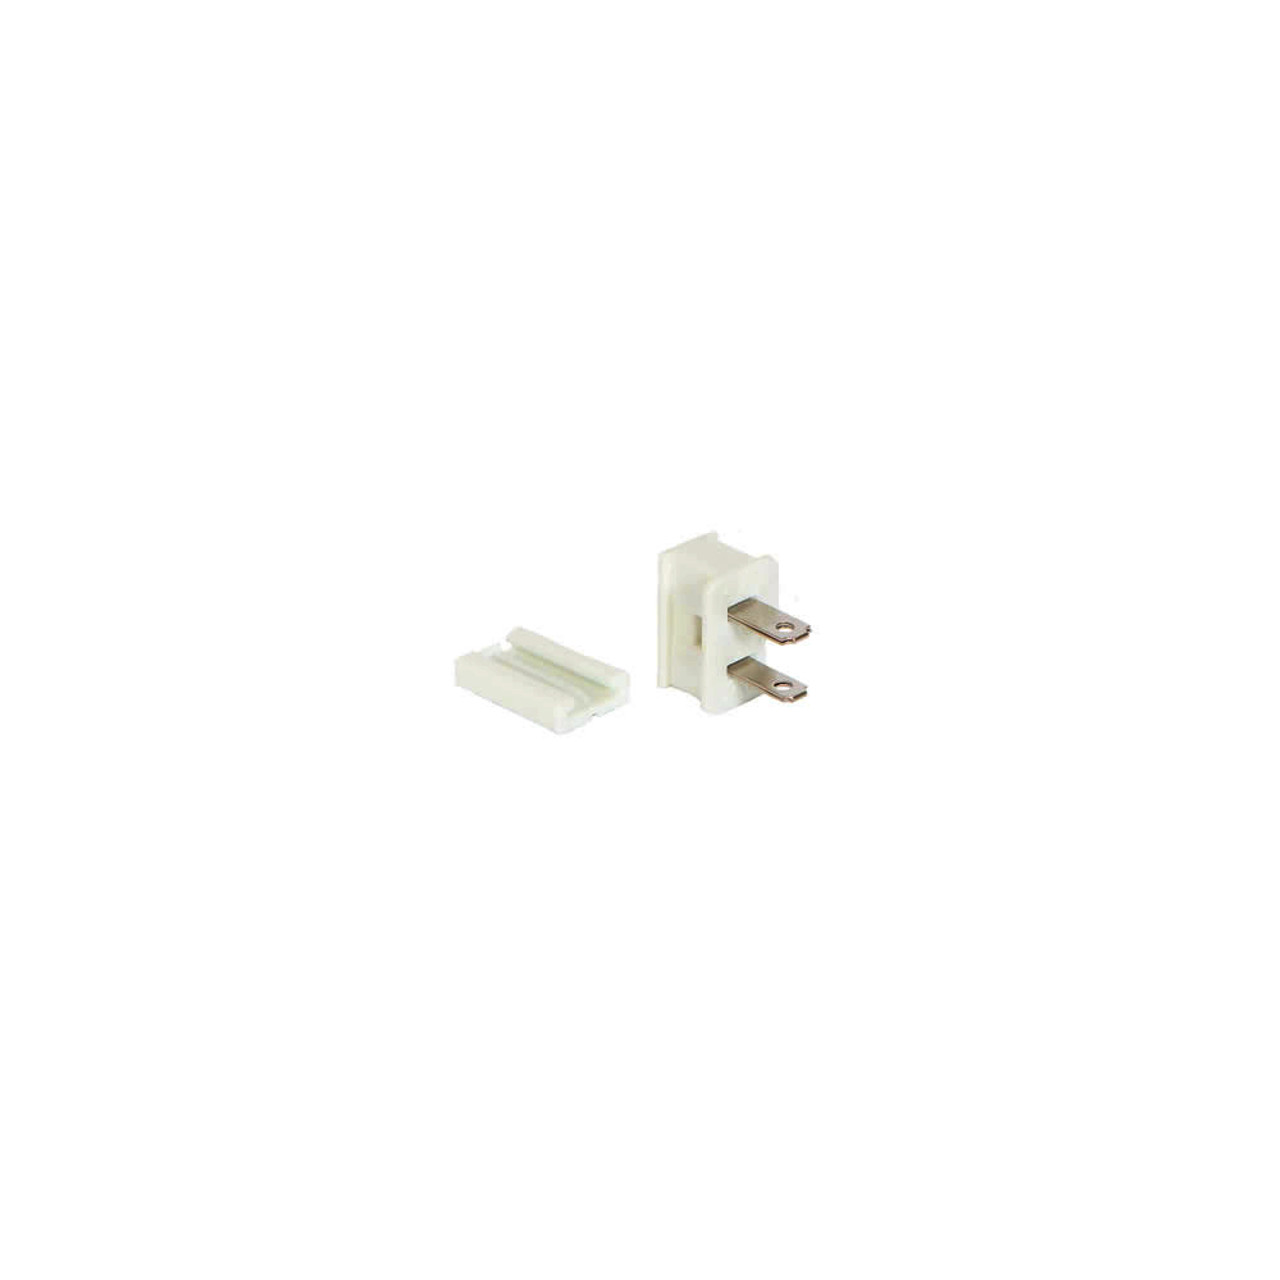 White Male Quick Zip Plug For SPT-1 18 Wire Gauge 8 Amps | Christmas ...